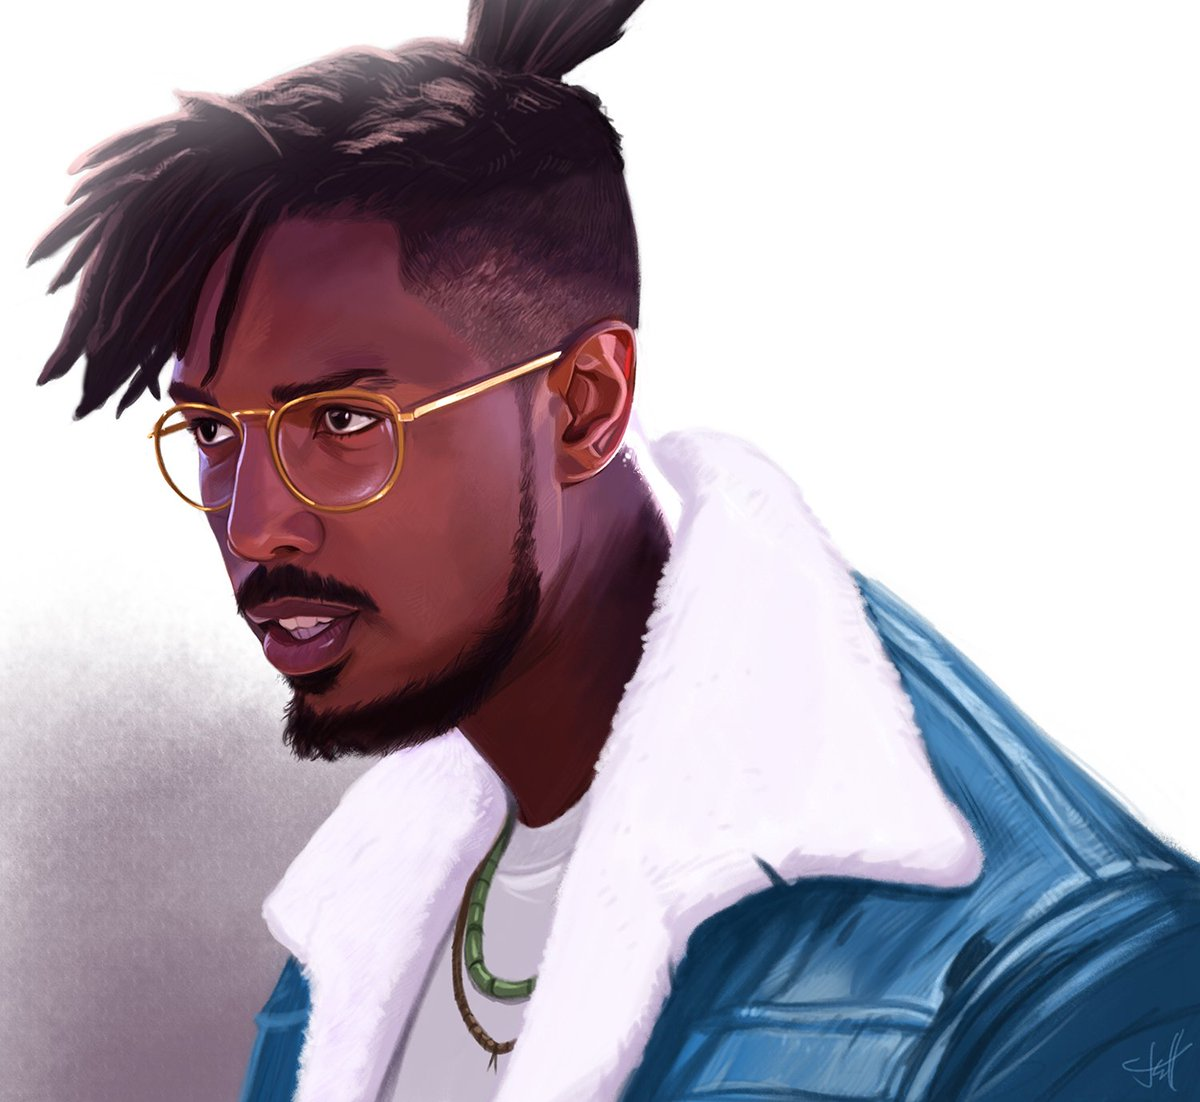 From sketch to completion! #Killmonger #BlackPanther #Marvel